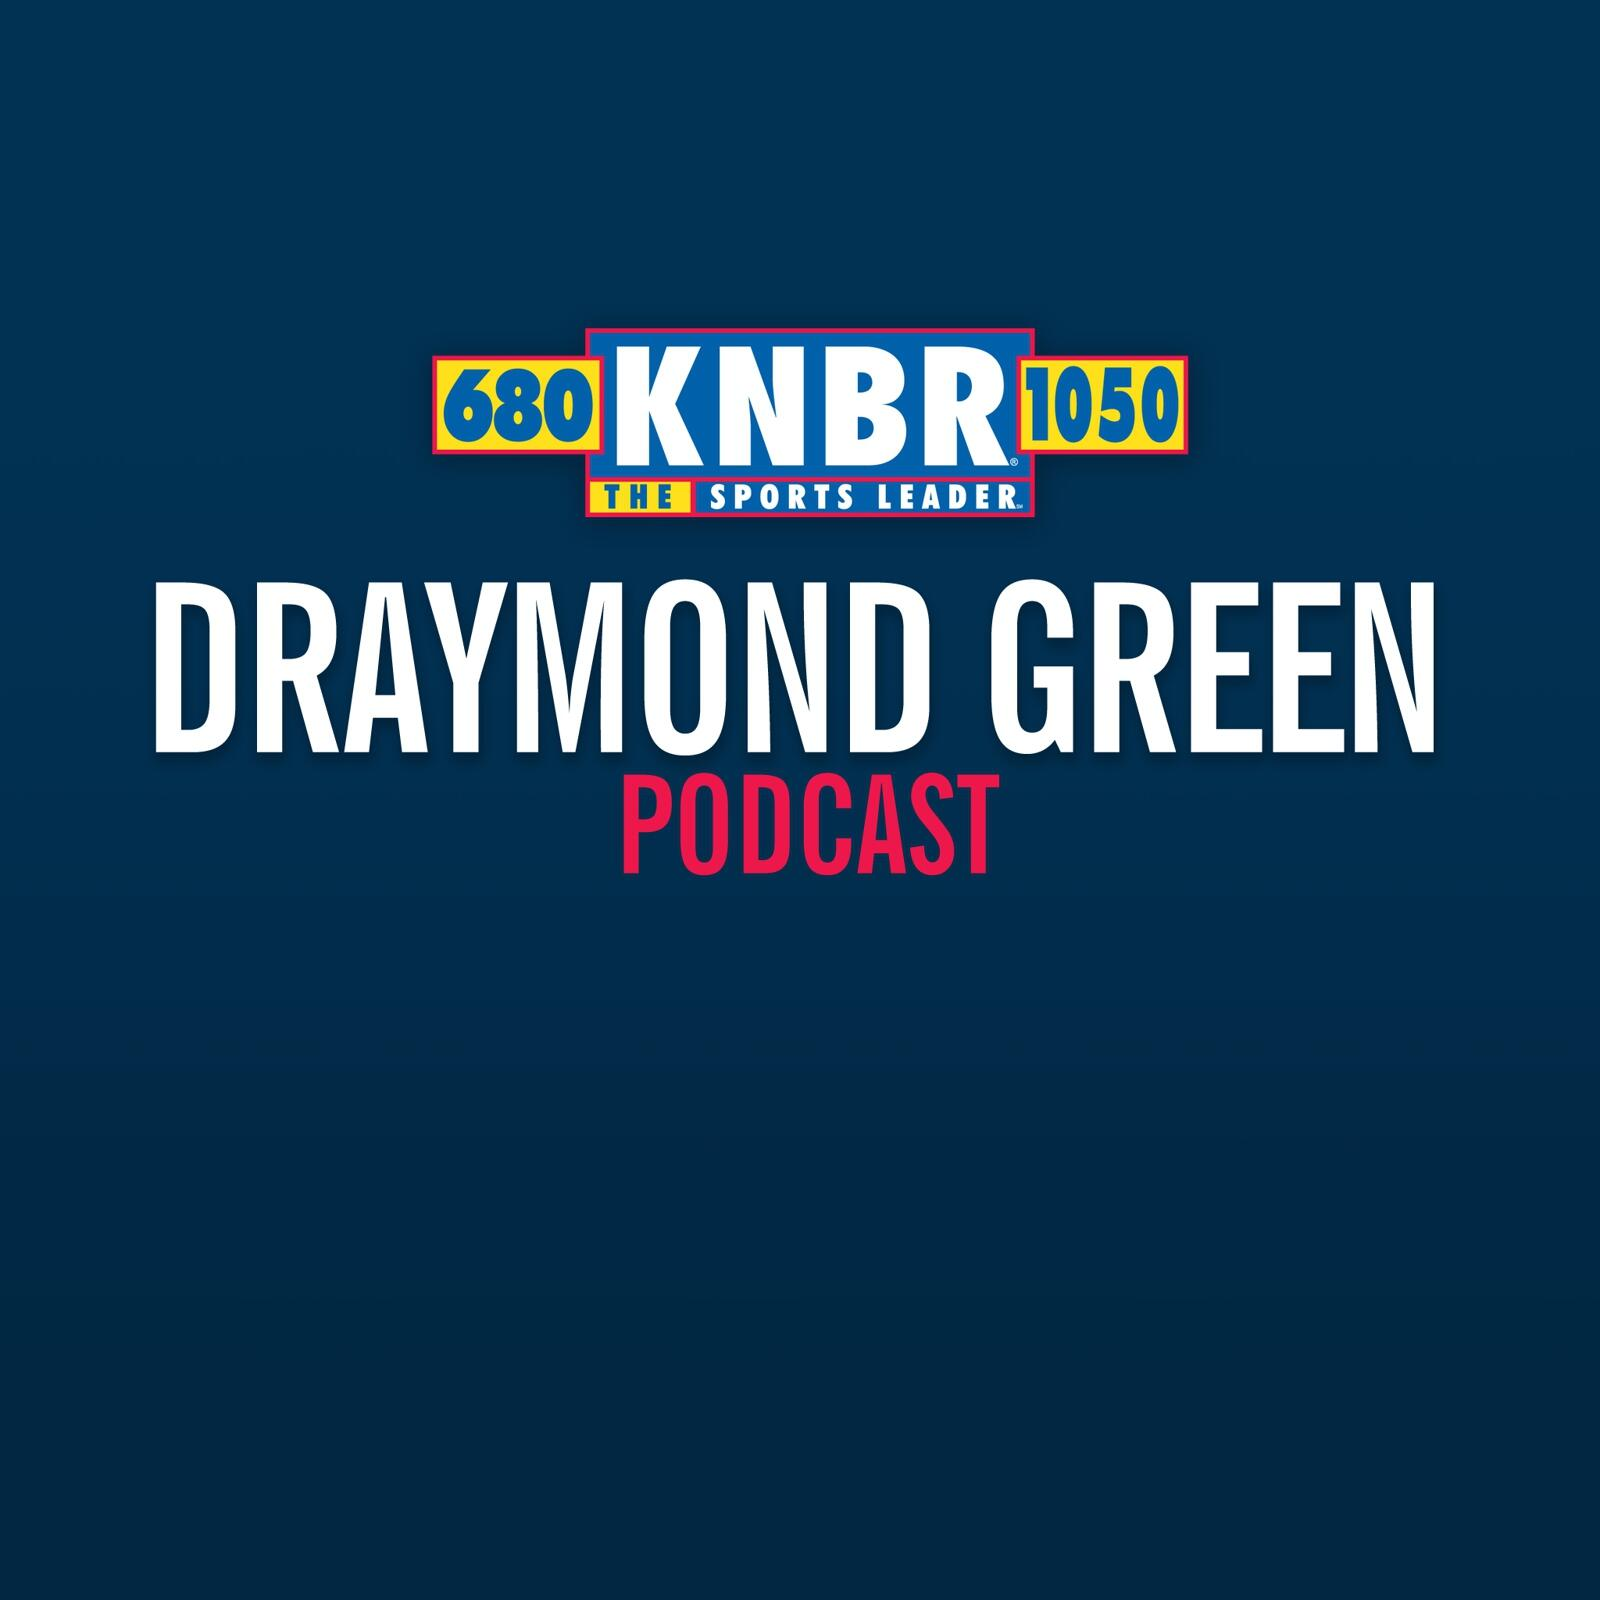 The Draymond Green Show